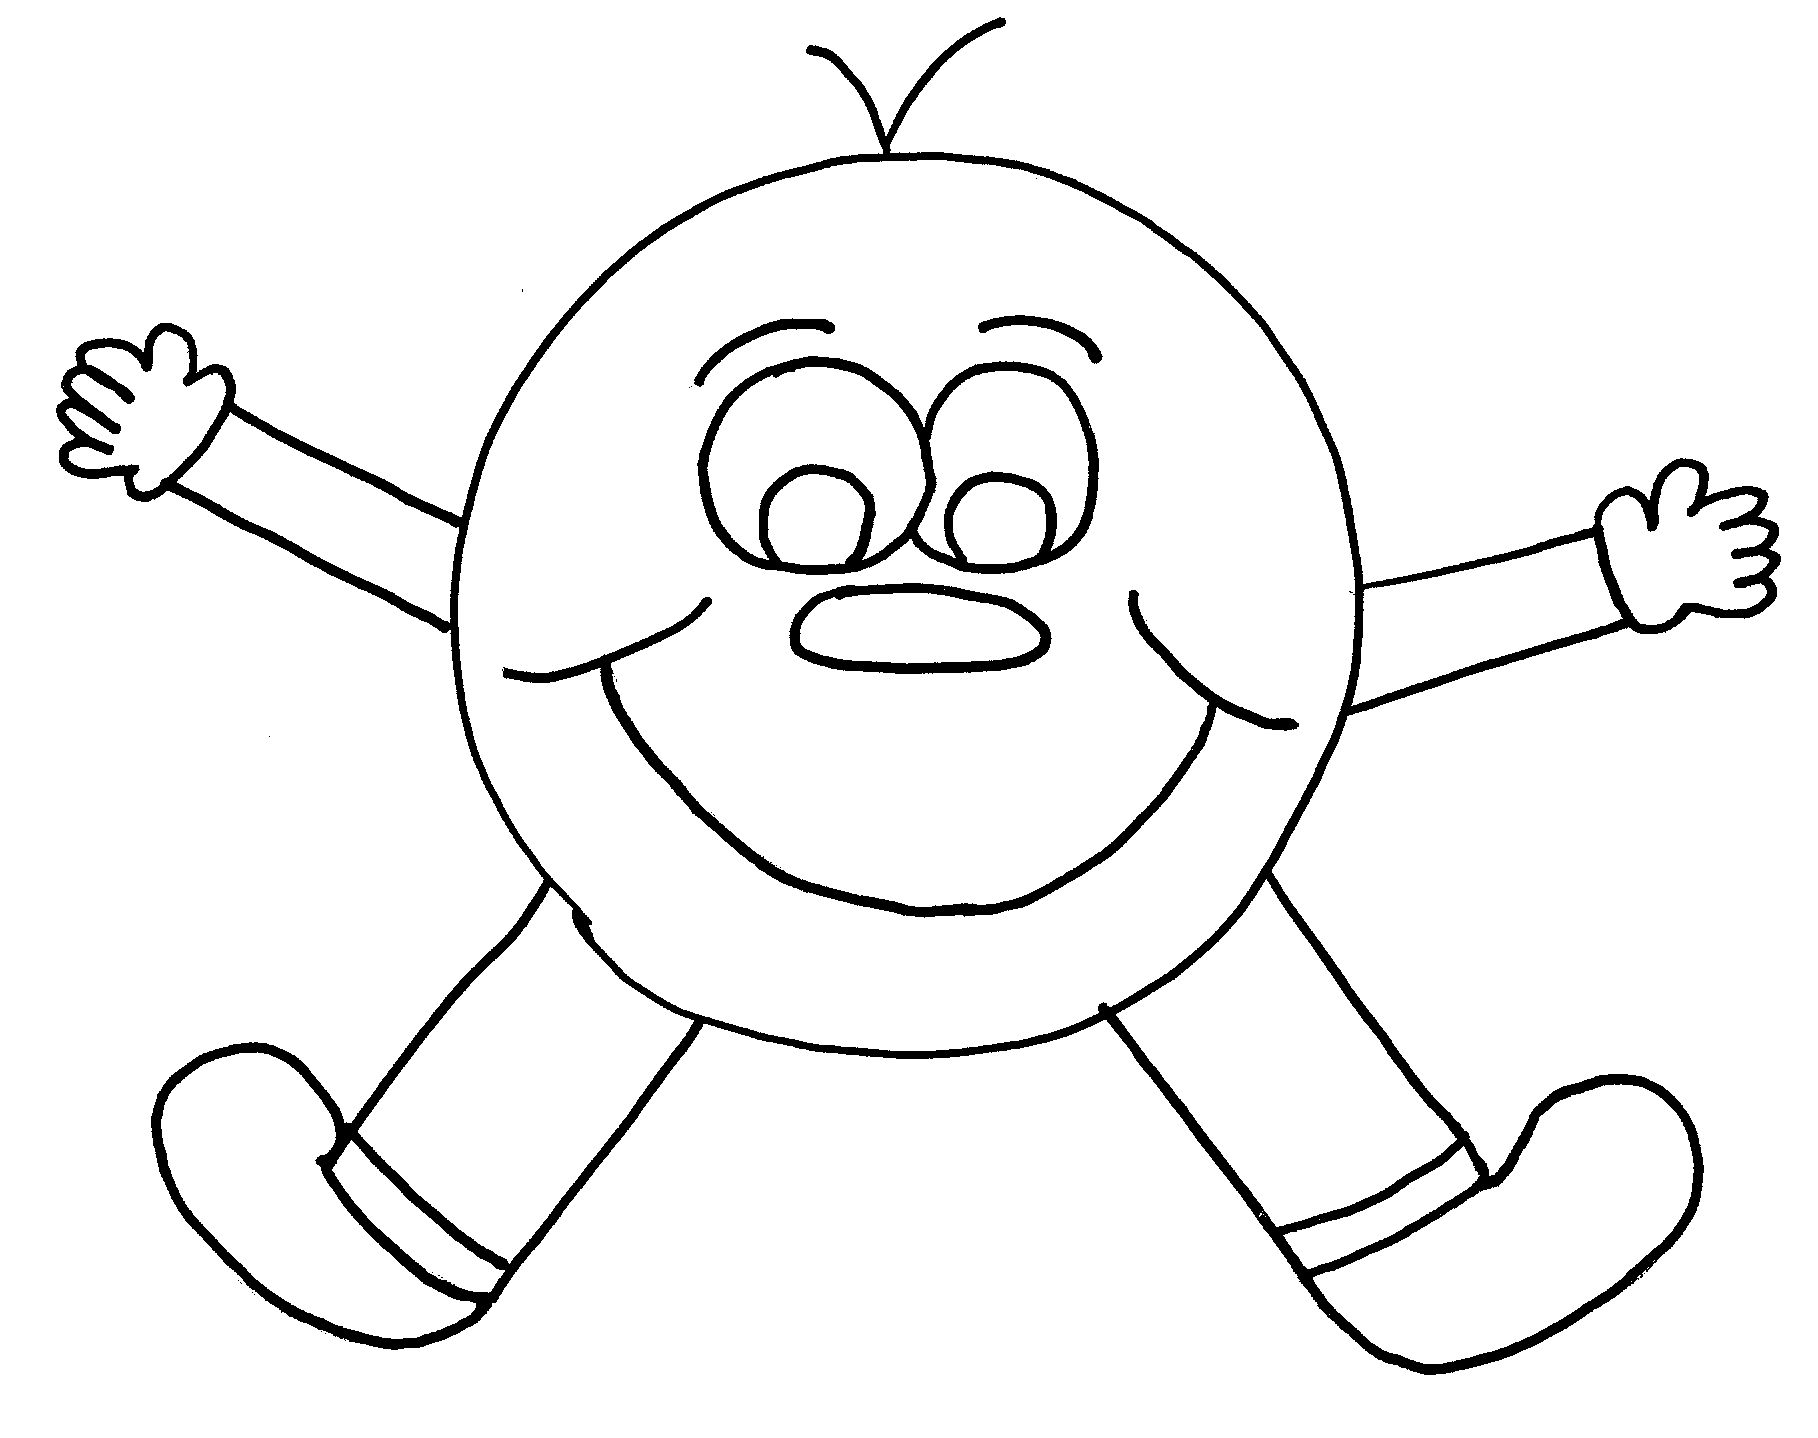 Smiling coloring pages ~ Free Smiley Face Coloring Pages - Coloring Home